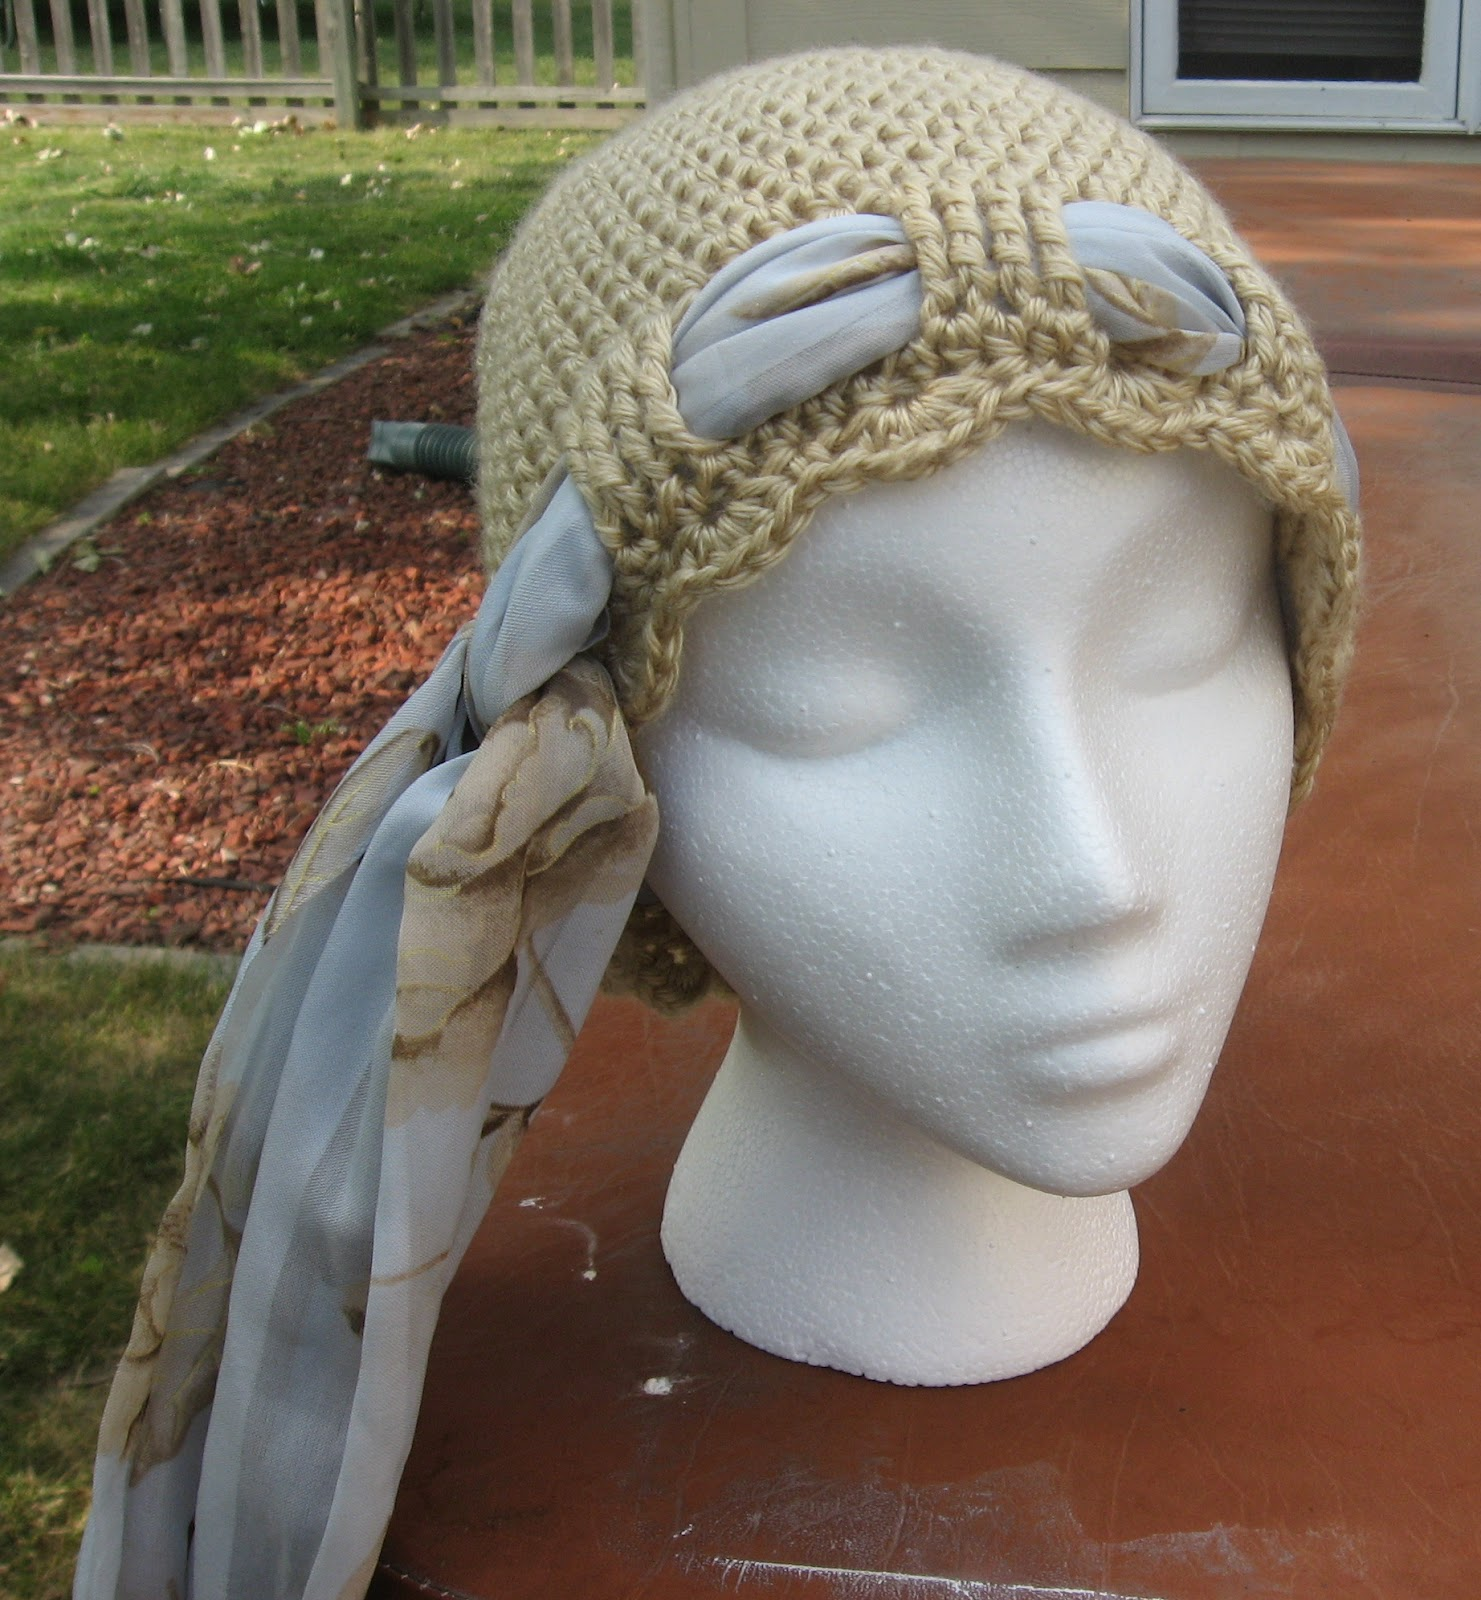 Crochet Projects: Chemo Hats Set #1